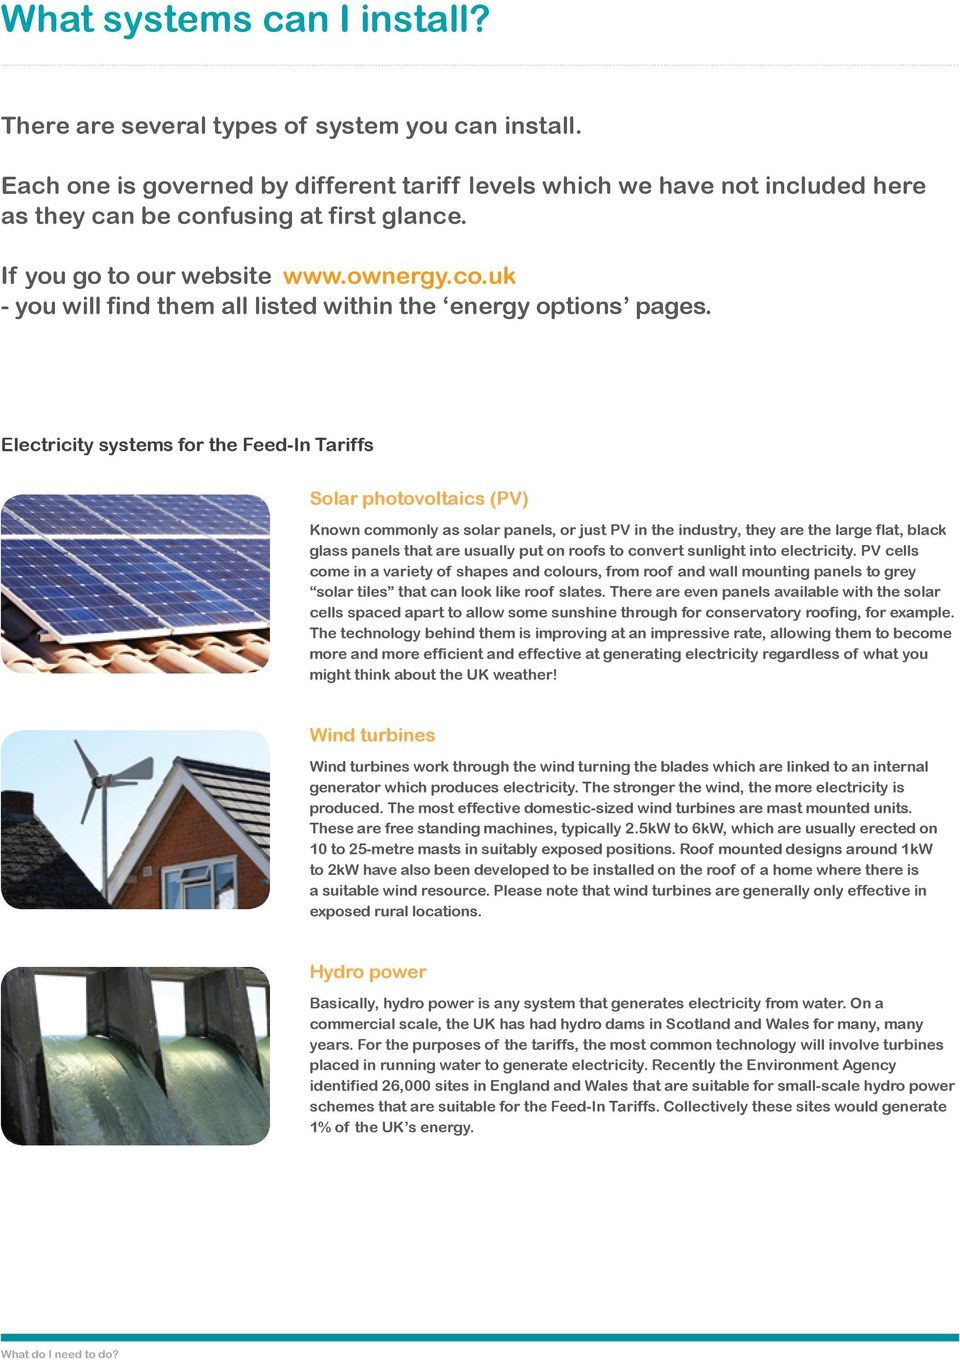 Electricity systems for the Feed-In Tariffs Solar photovoltaics (PV) Known commonly as solar panels, or just PV in the industry, they are the large flat, black glass panels that are usually put on